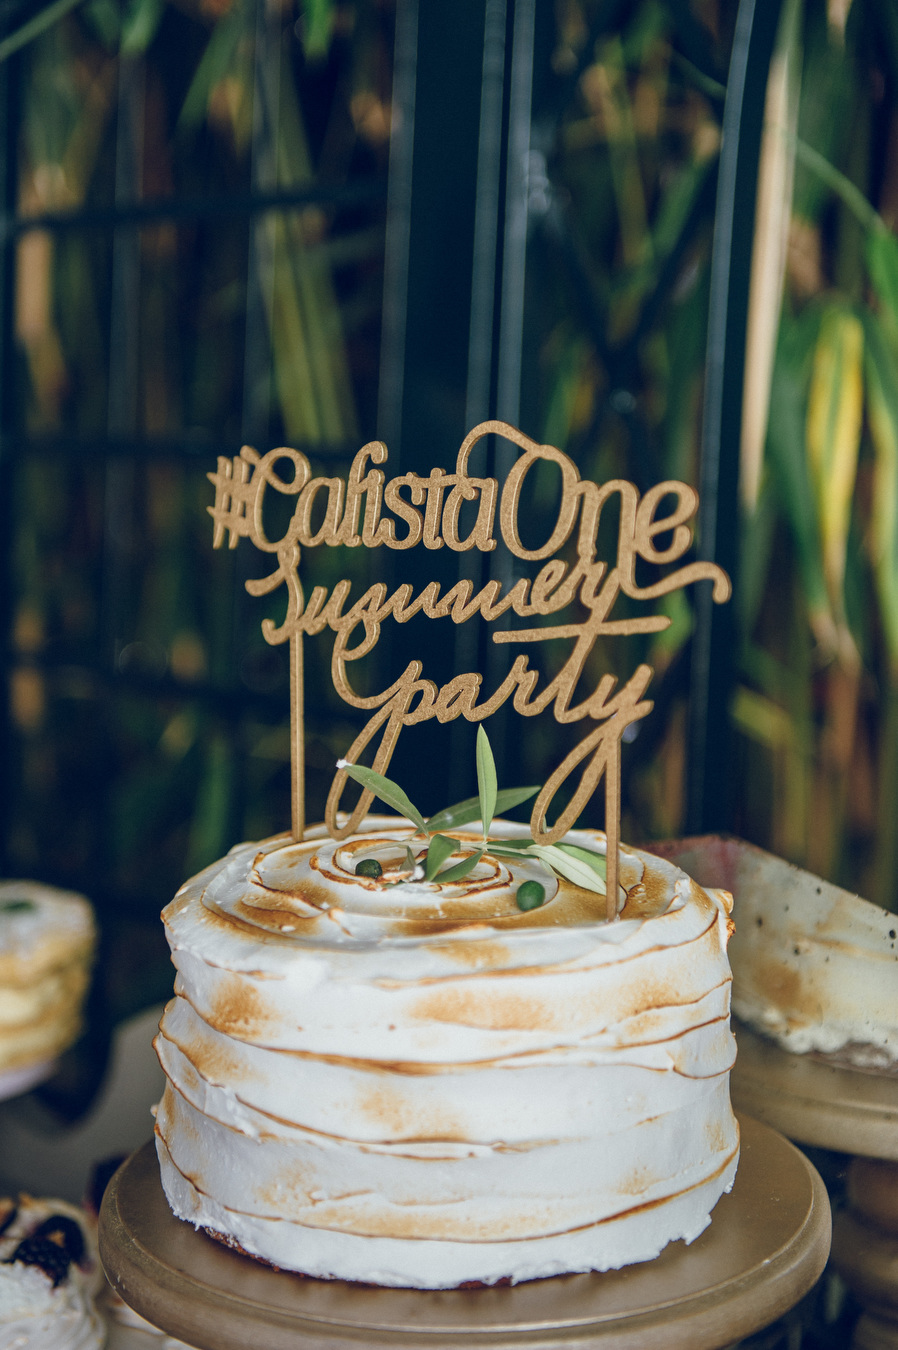 calista-one-lista-de-bodas-online-blog-de-bodas-calista-one-summer-party-2016-tartas-bodas-7